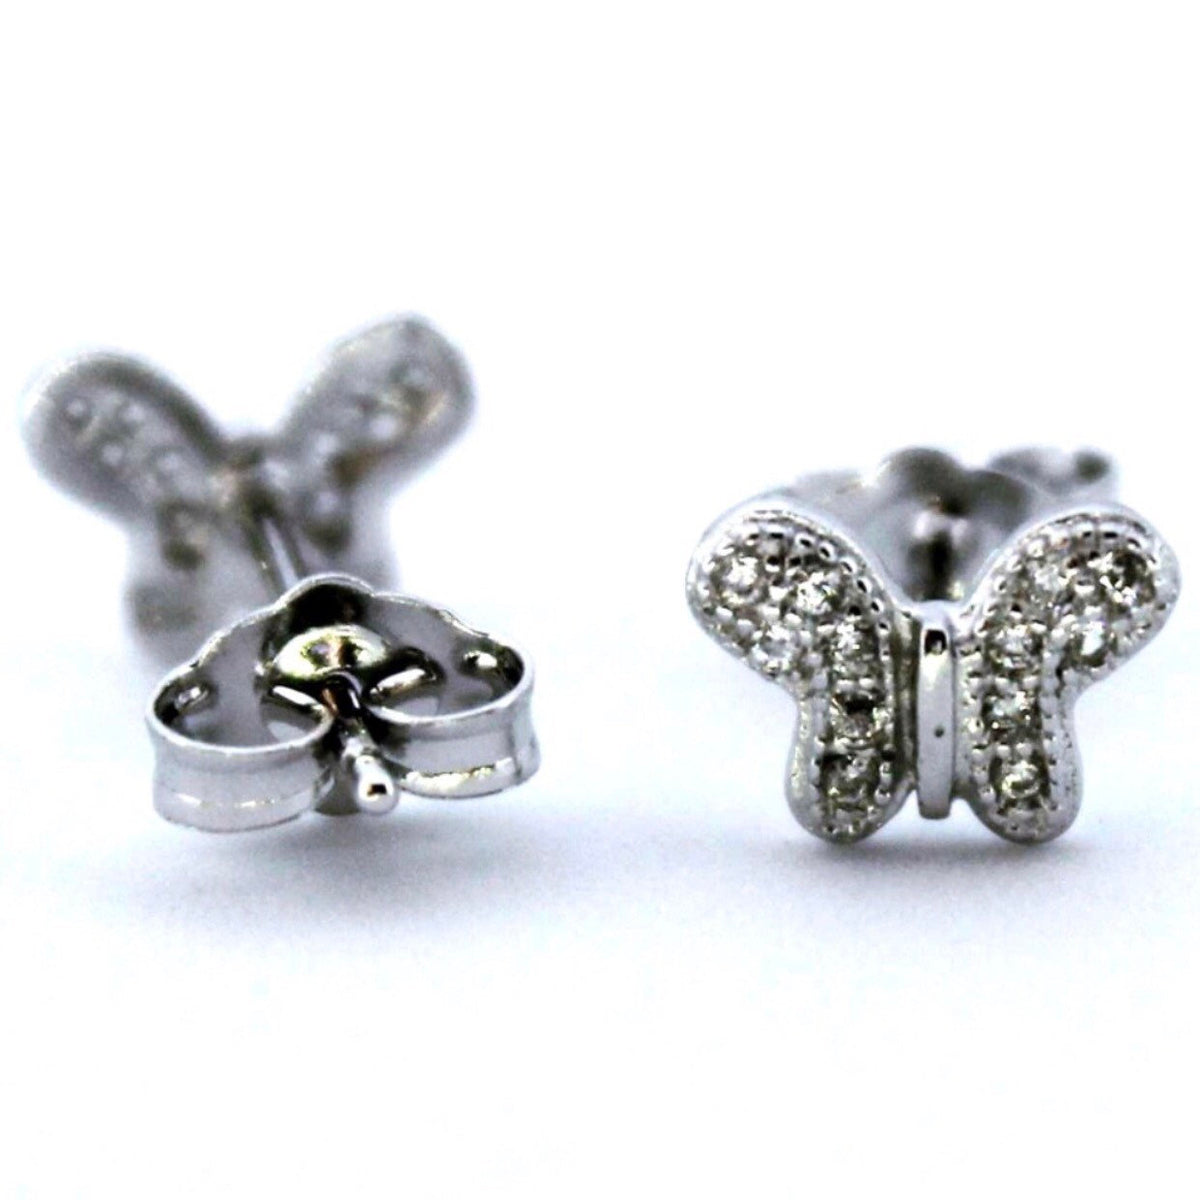 14K White Gold on Silver Butterfly Stud Earrings - 3 Royal Dazzy